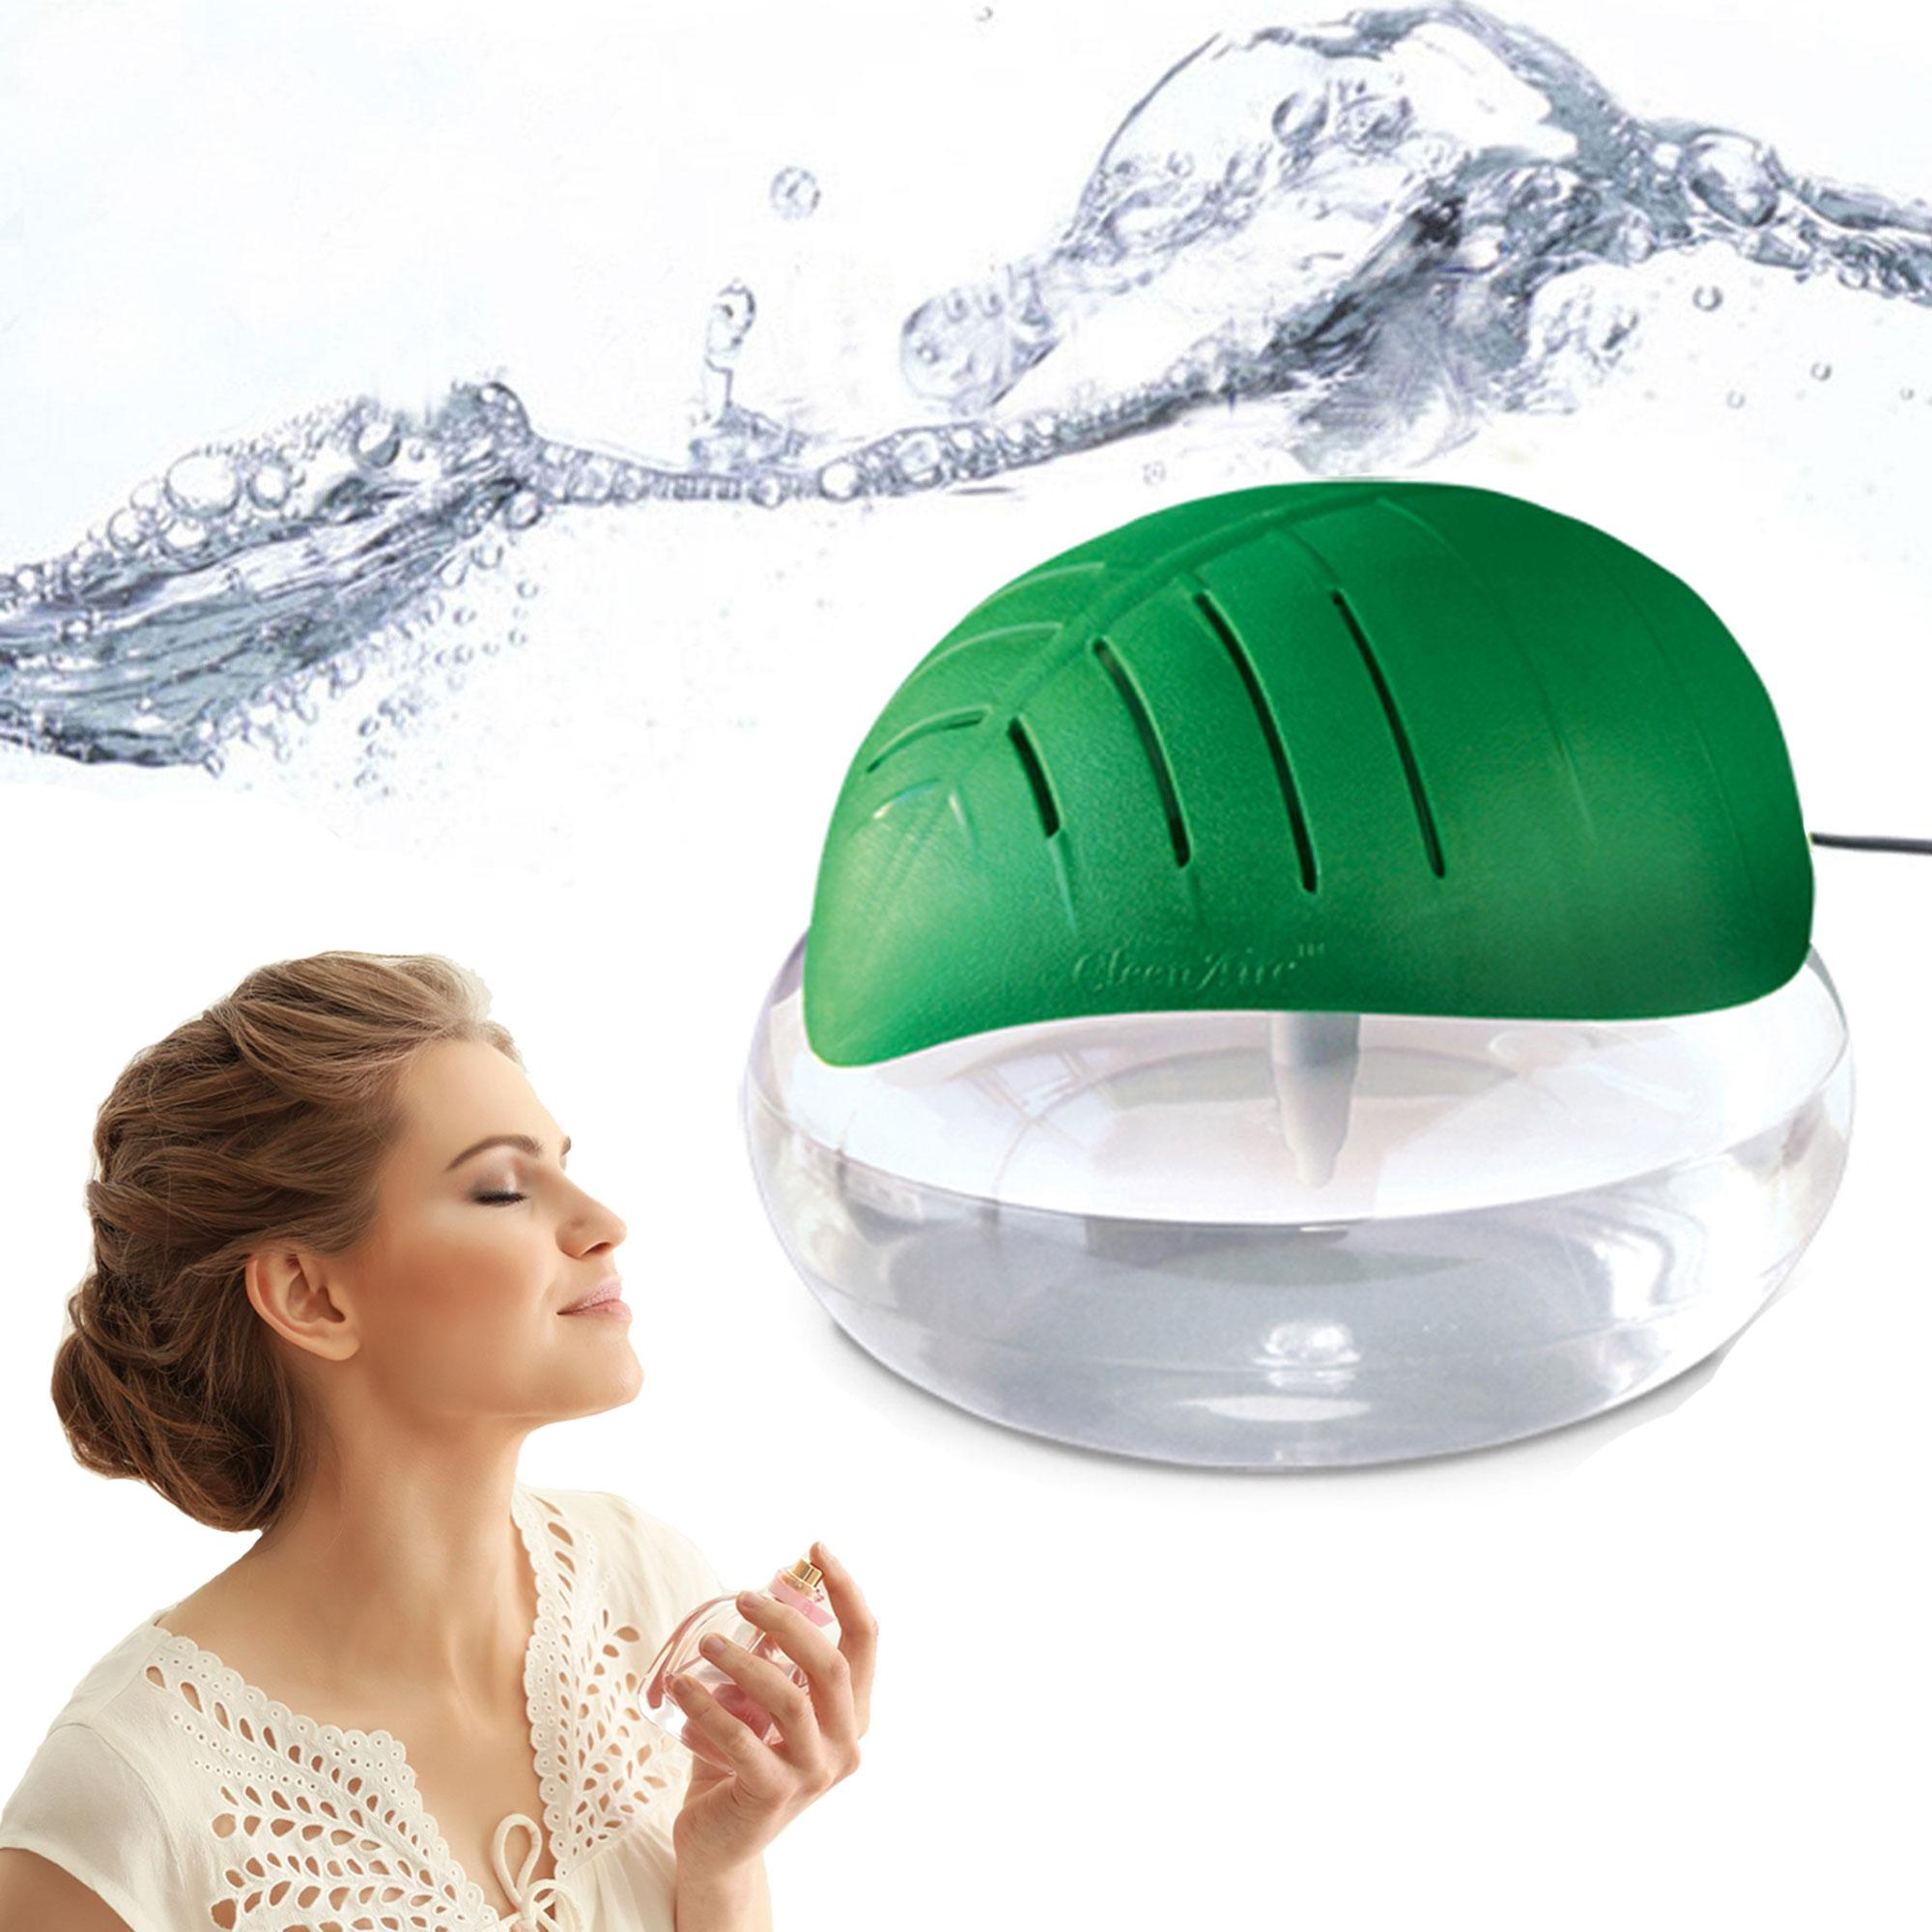 H2o+ Air Purifier Humidifier And Revitalizer By Gonzalez General Merchandise.